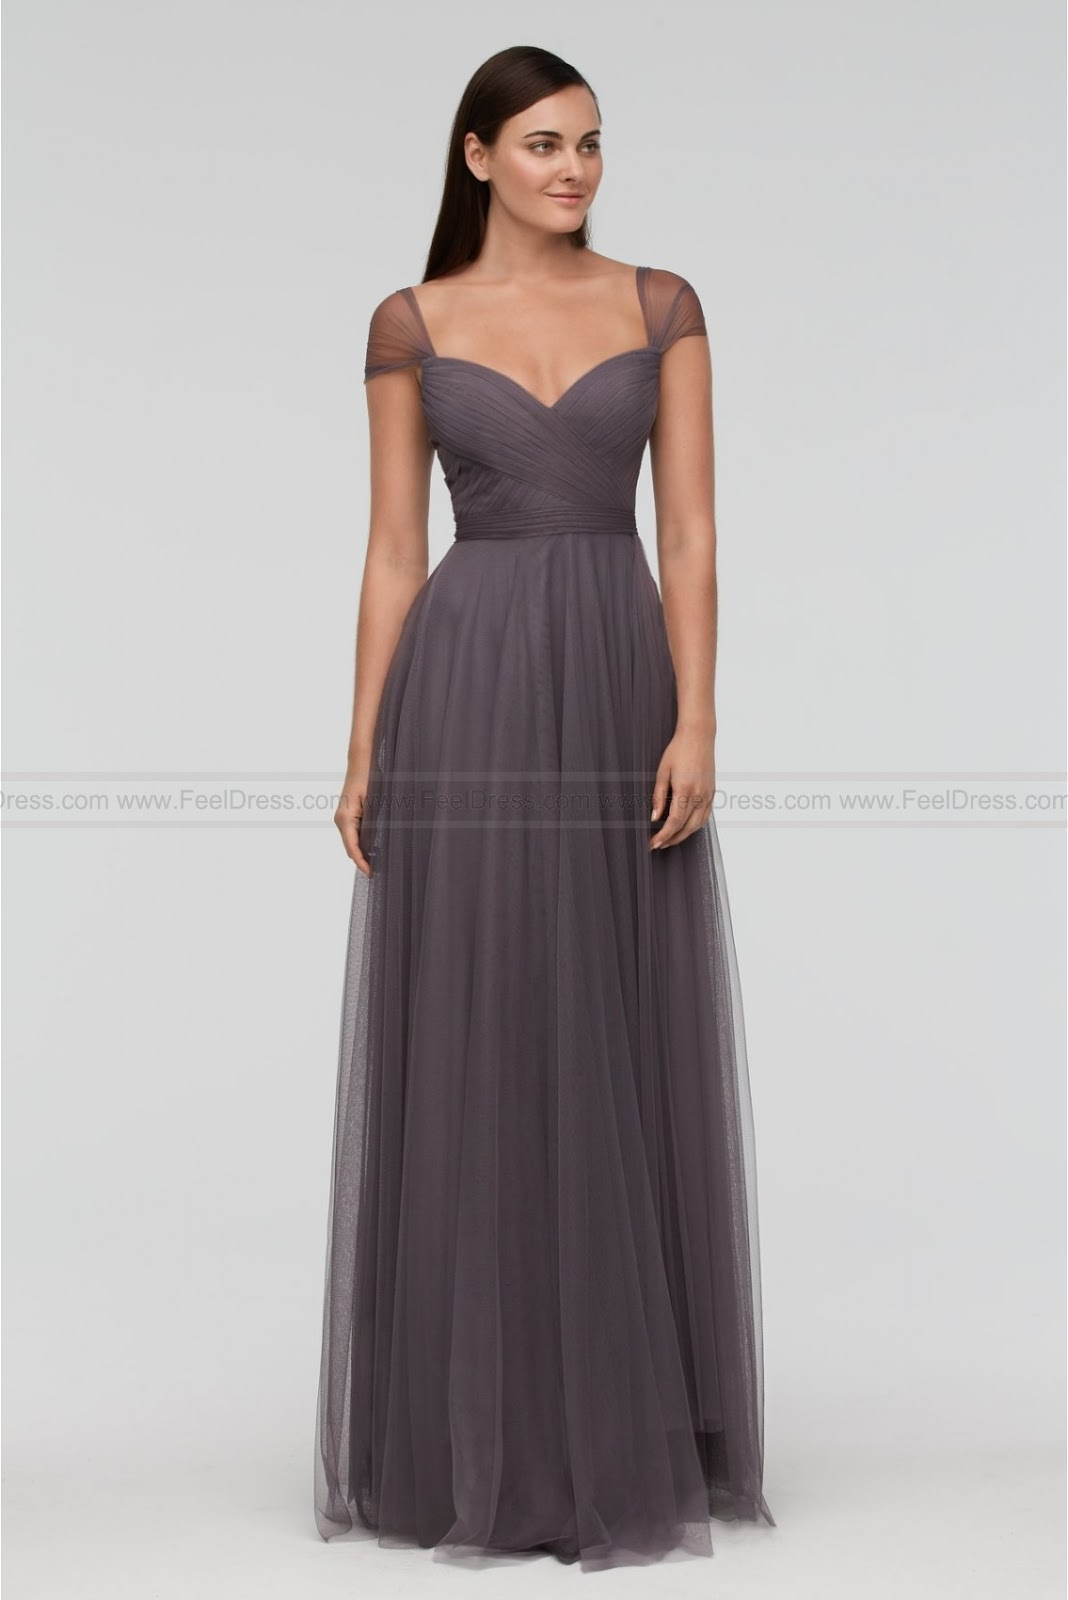 6c0ee7bd8c1e 2016 cheap wedding dresses: Watters Candy Bridesmaid Dress Style 9361